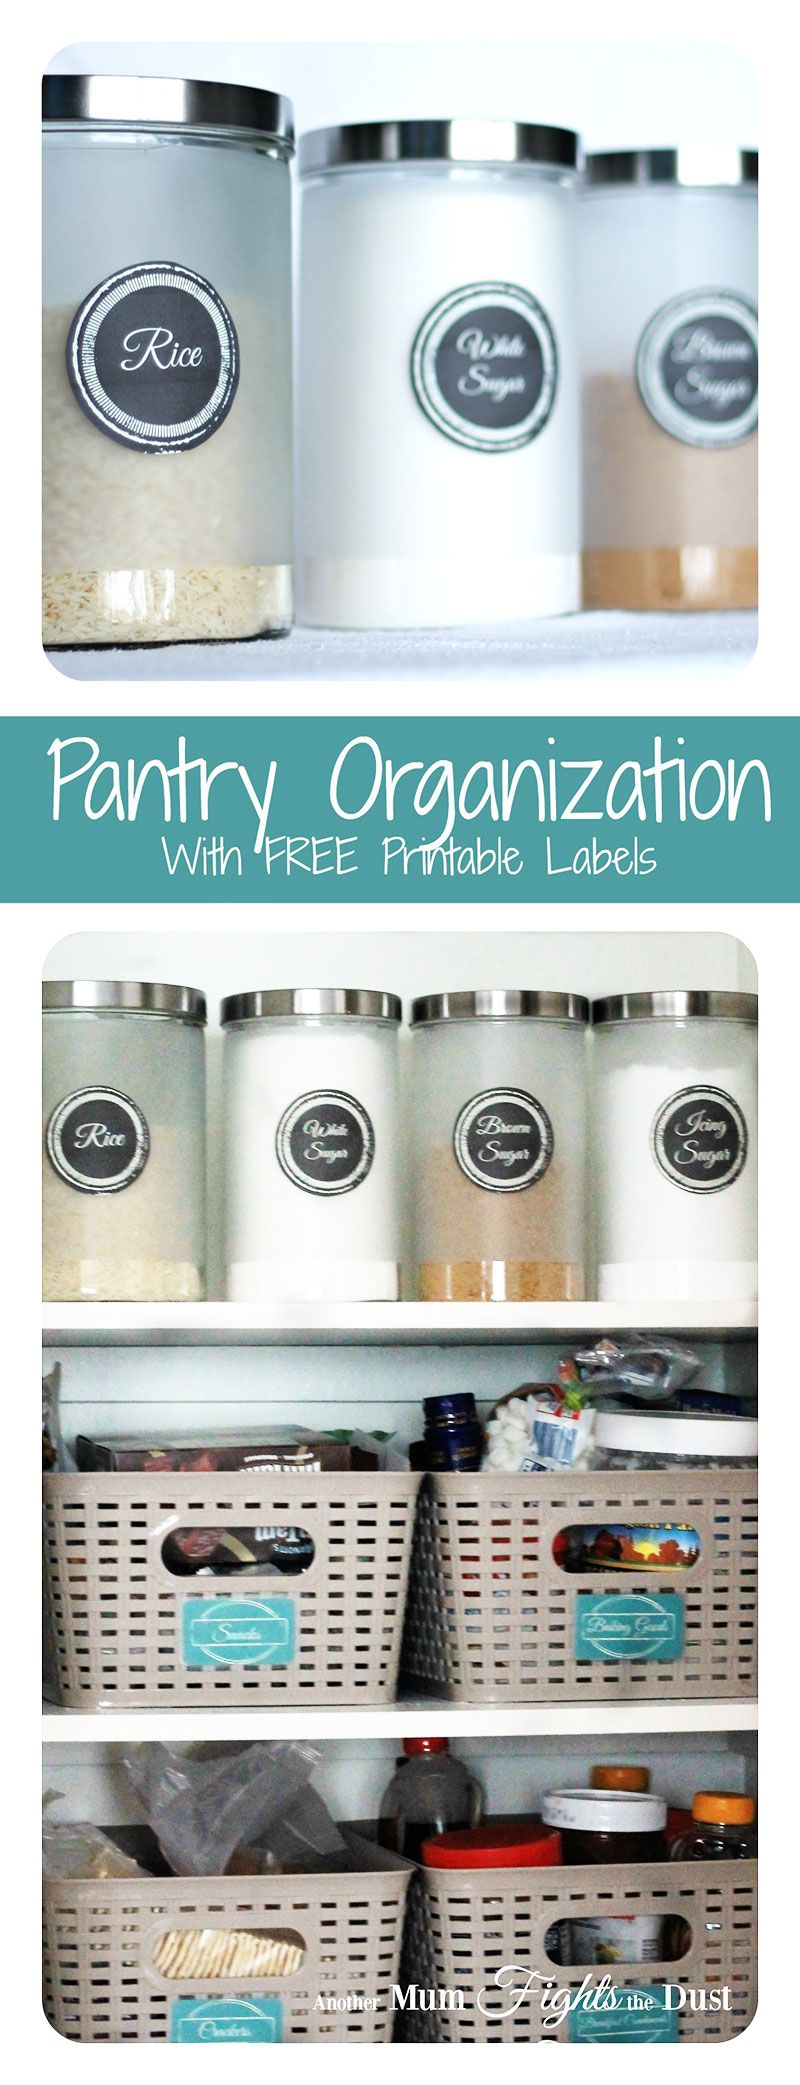 Organize your Pantry | Pinterest | Pantry, Pantry organisation and ...